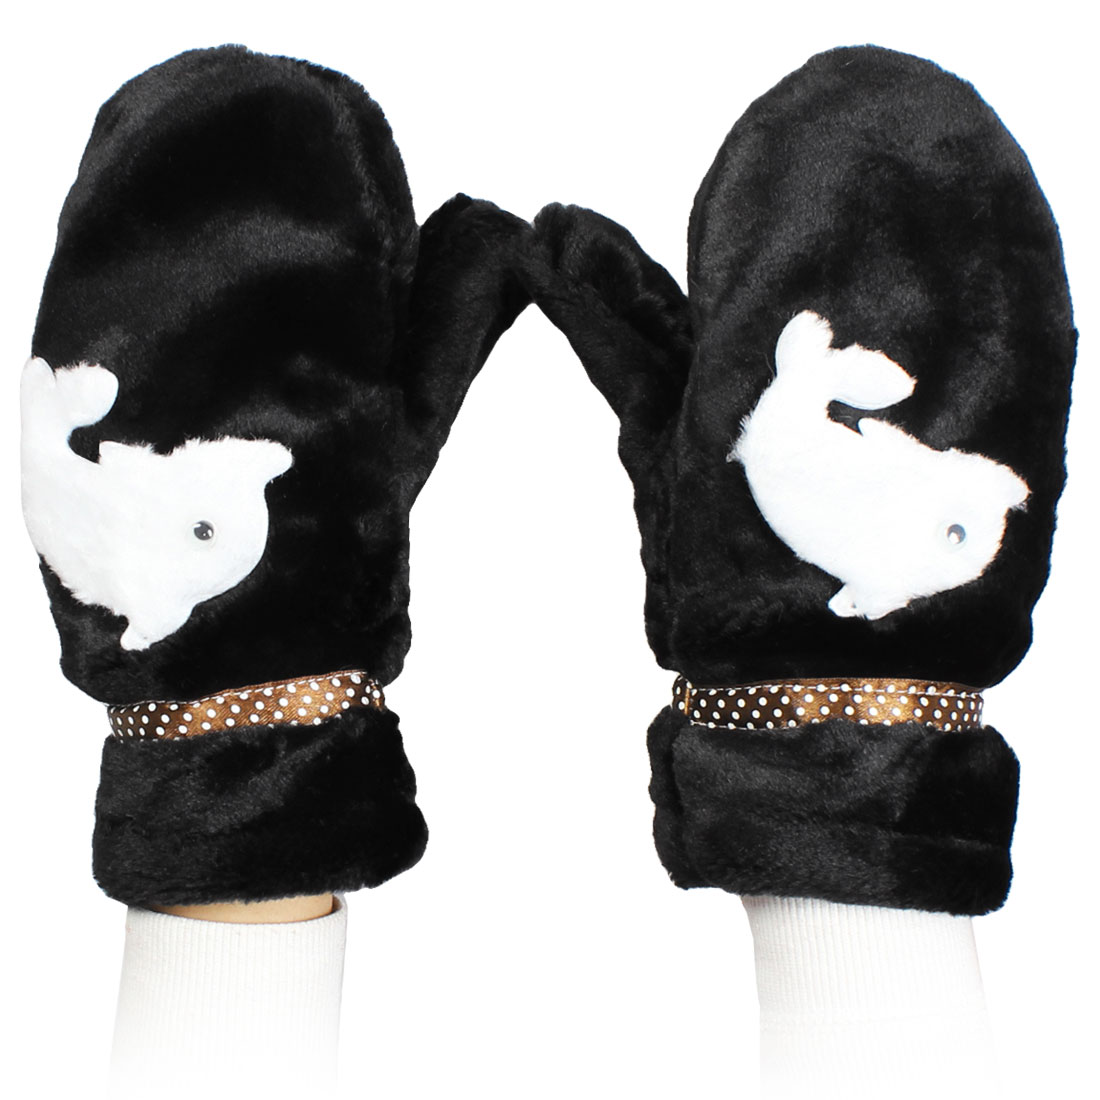 Dolphin Accent Winter Warmer Black Mitten Gloves Pair for Lady